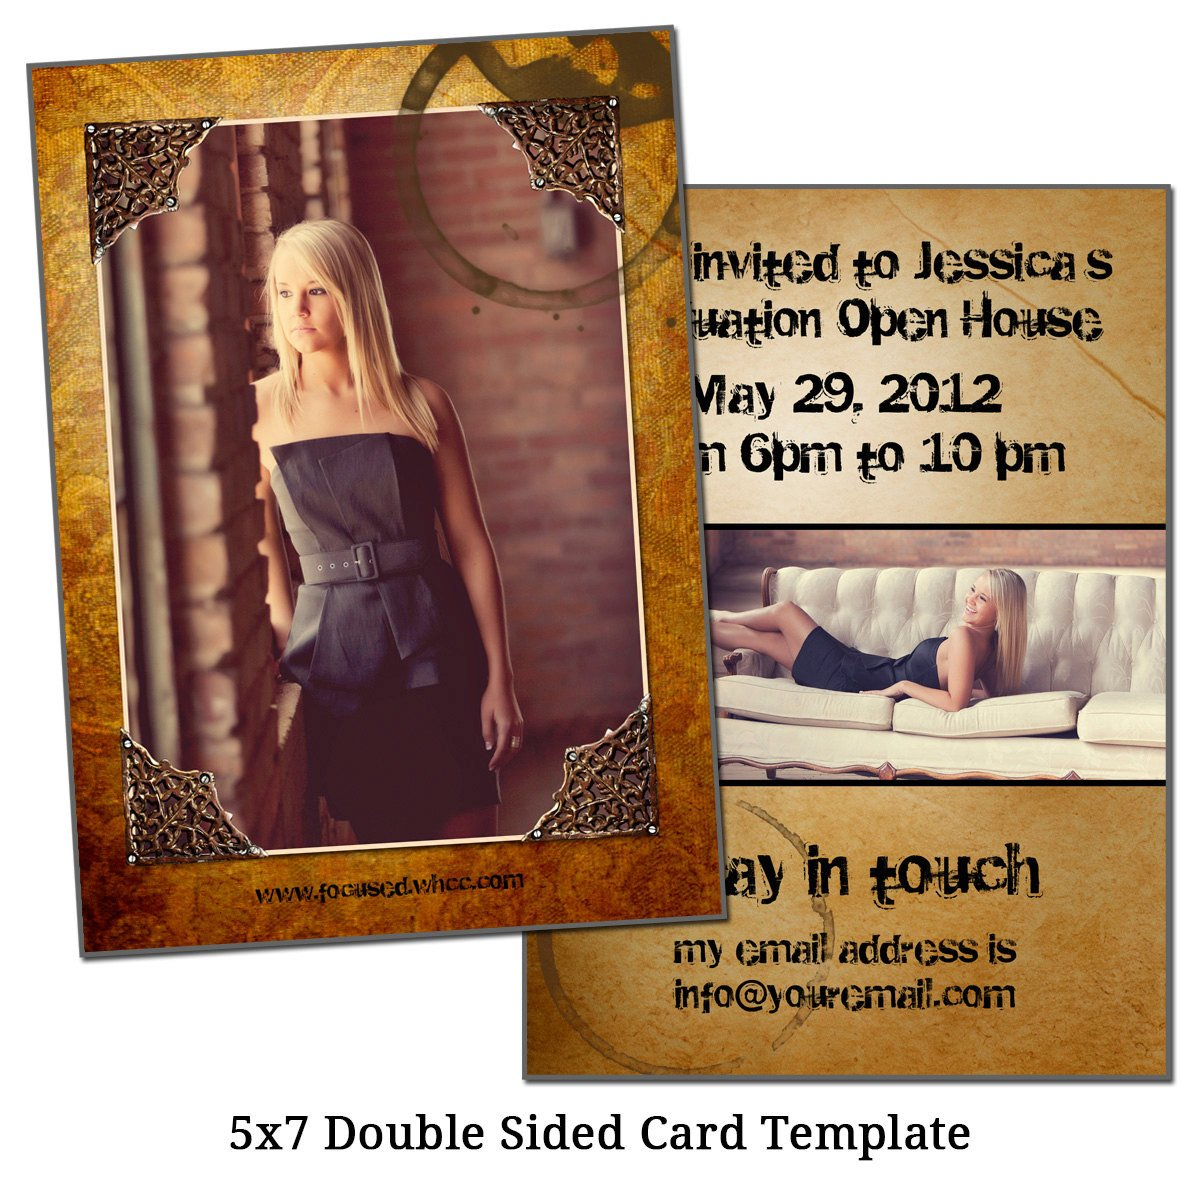 Two Sided Postcard Template 5x7 Double Sided Card Template Framed Future by